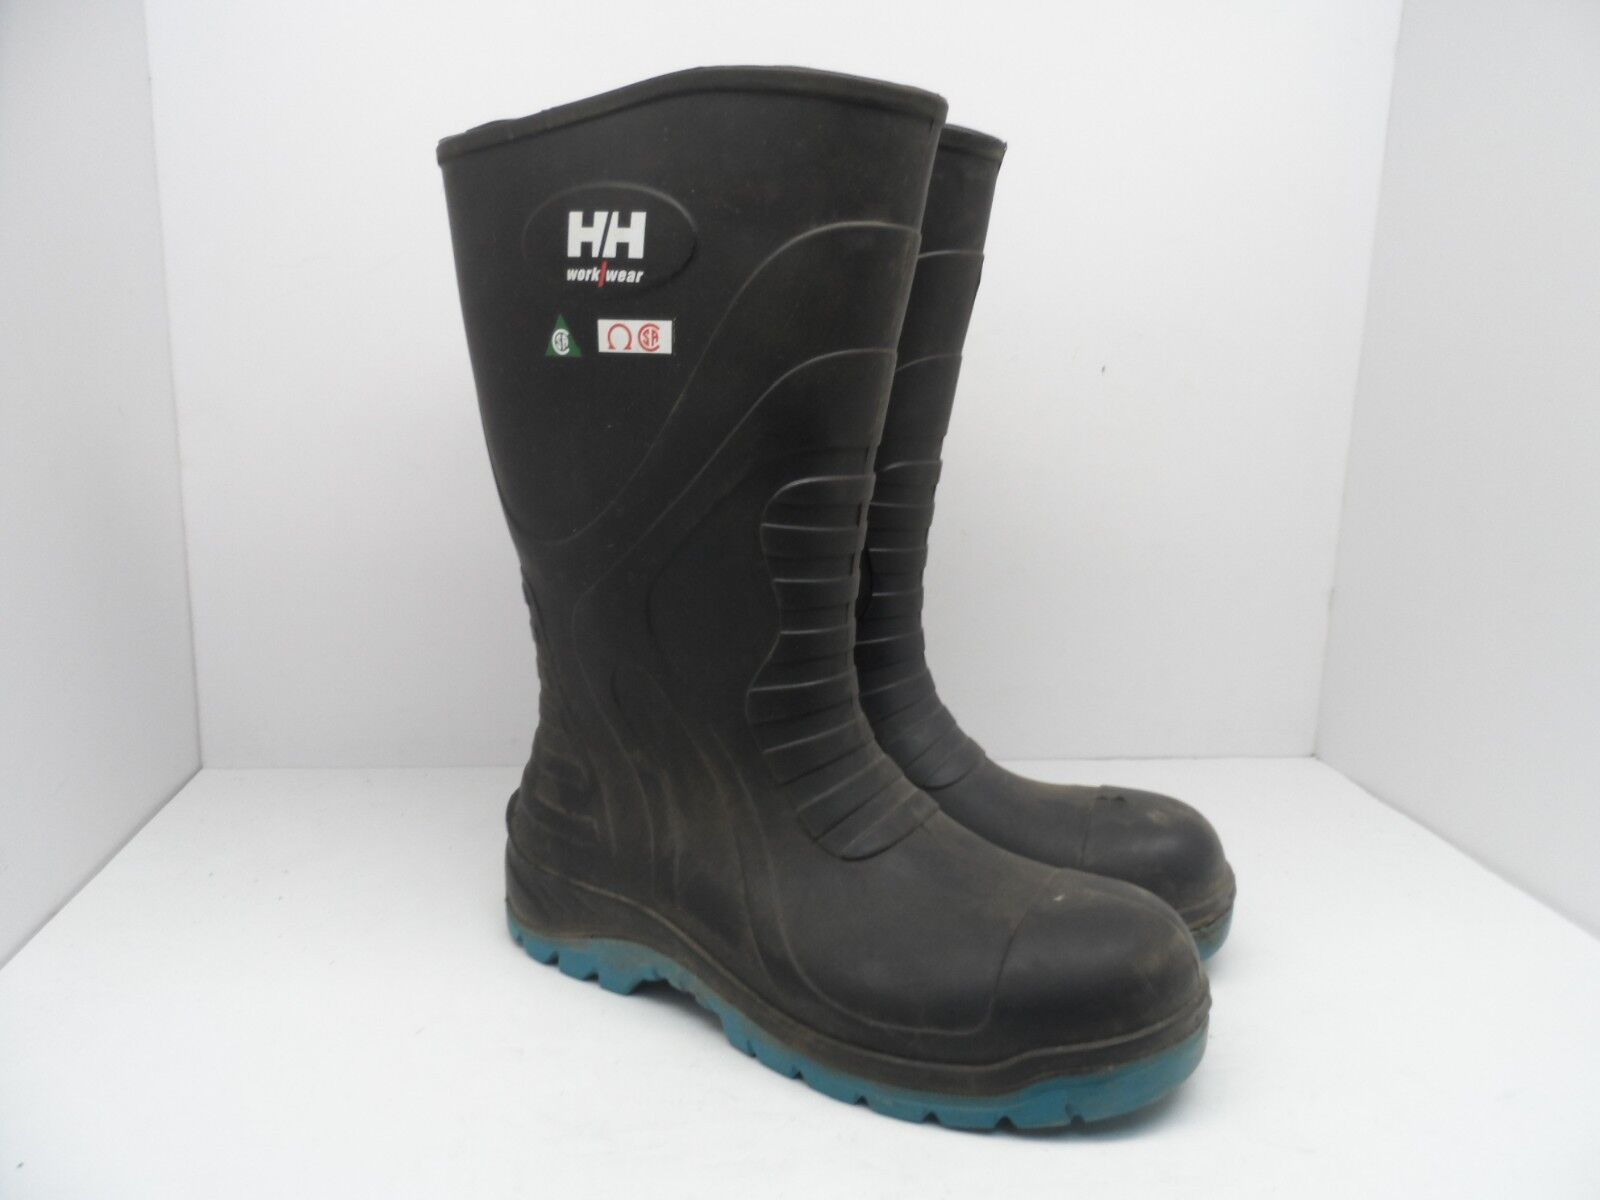 HELLY HANSEN WORKWEAR Women's Steel Toe Steel Plate PU Safety Boots Black 10M